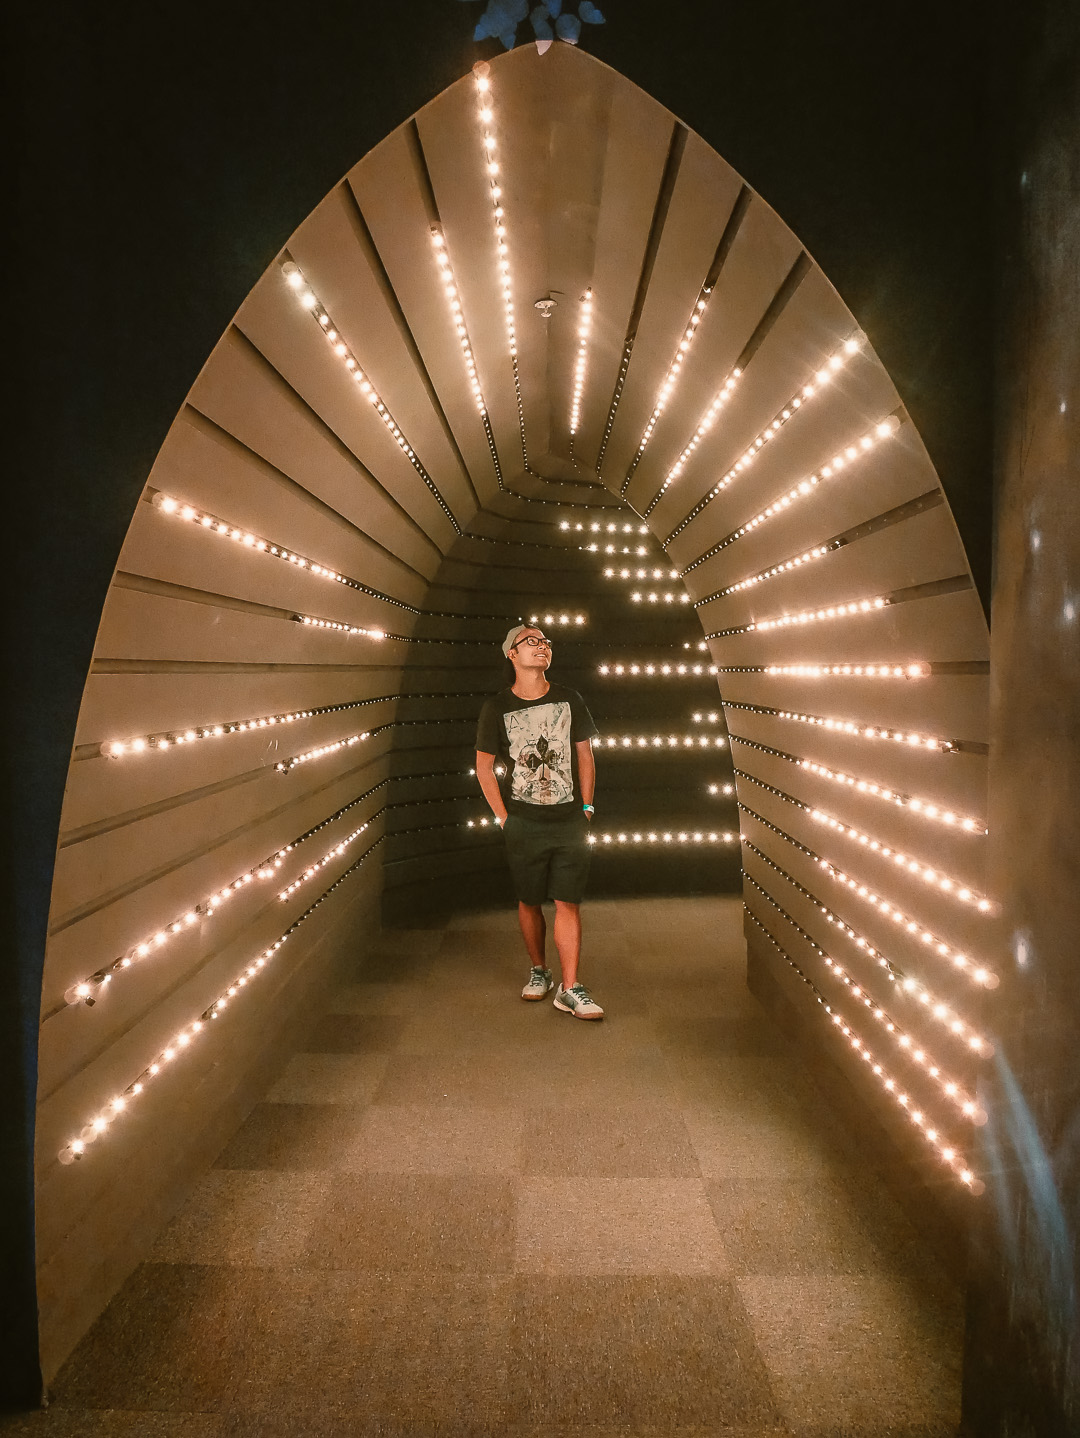 Light Tunnel at Penang Butterfly Farm